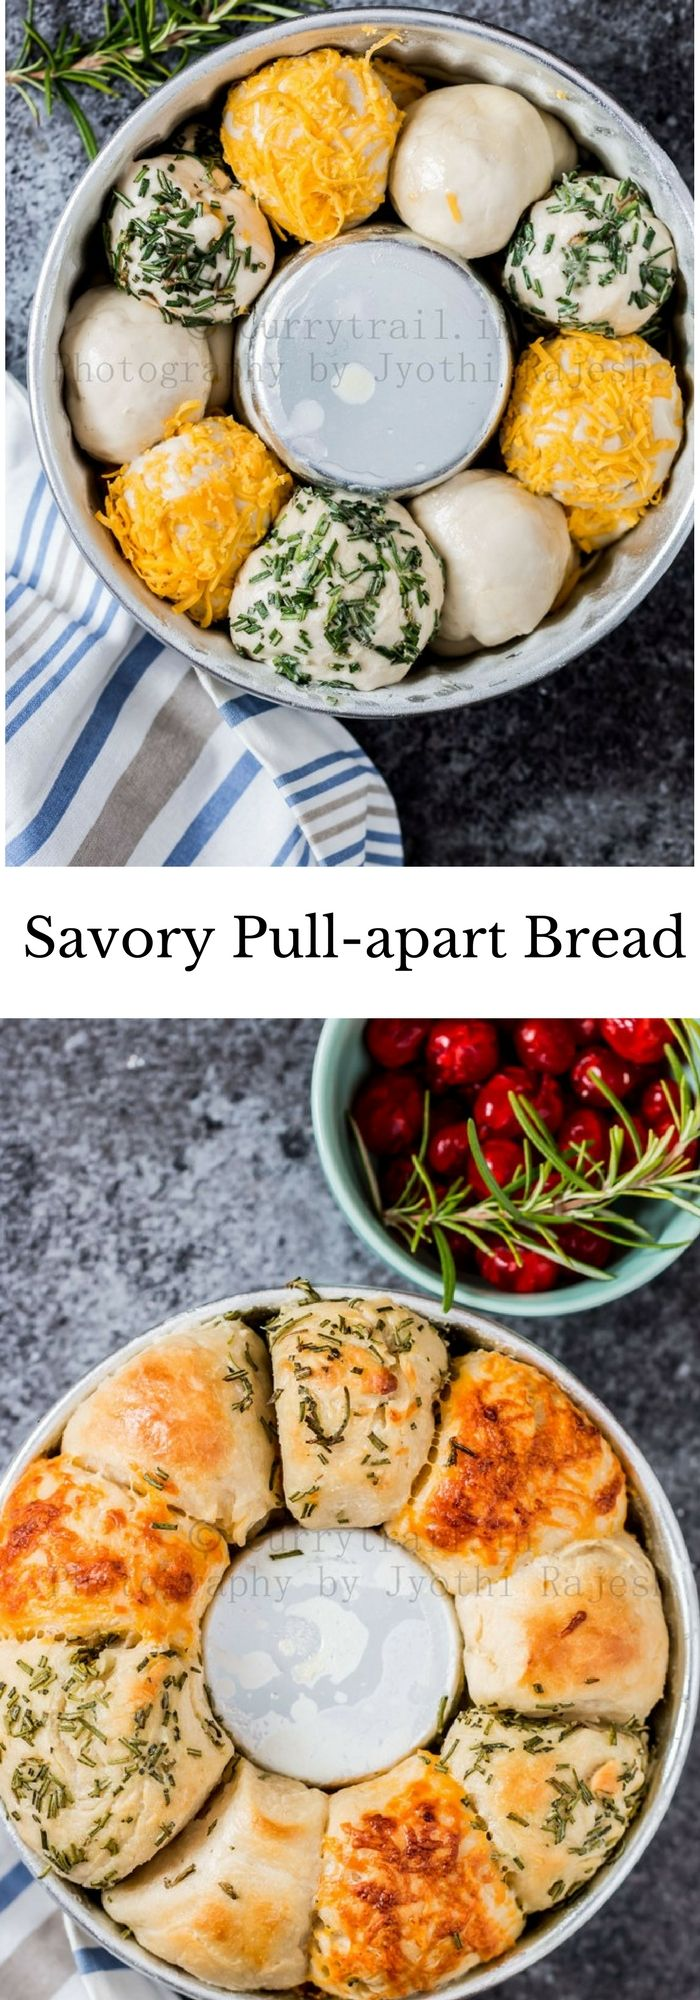 Savory Pull-apart Bread – Christmas Special Bread